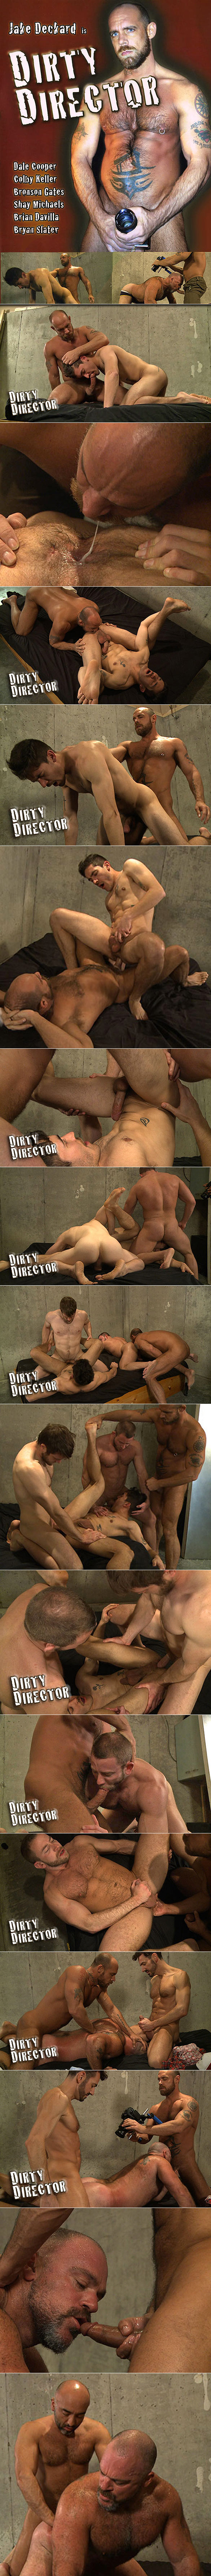 "NakedSword: Ray Dragon's ""Dirty Director"""